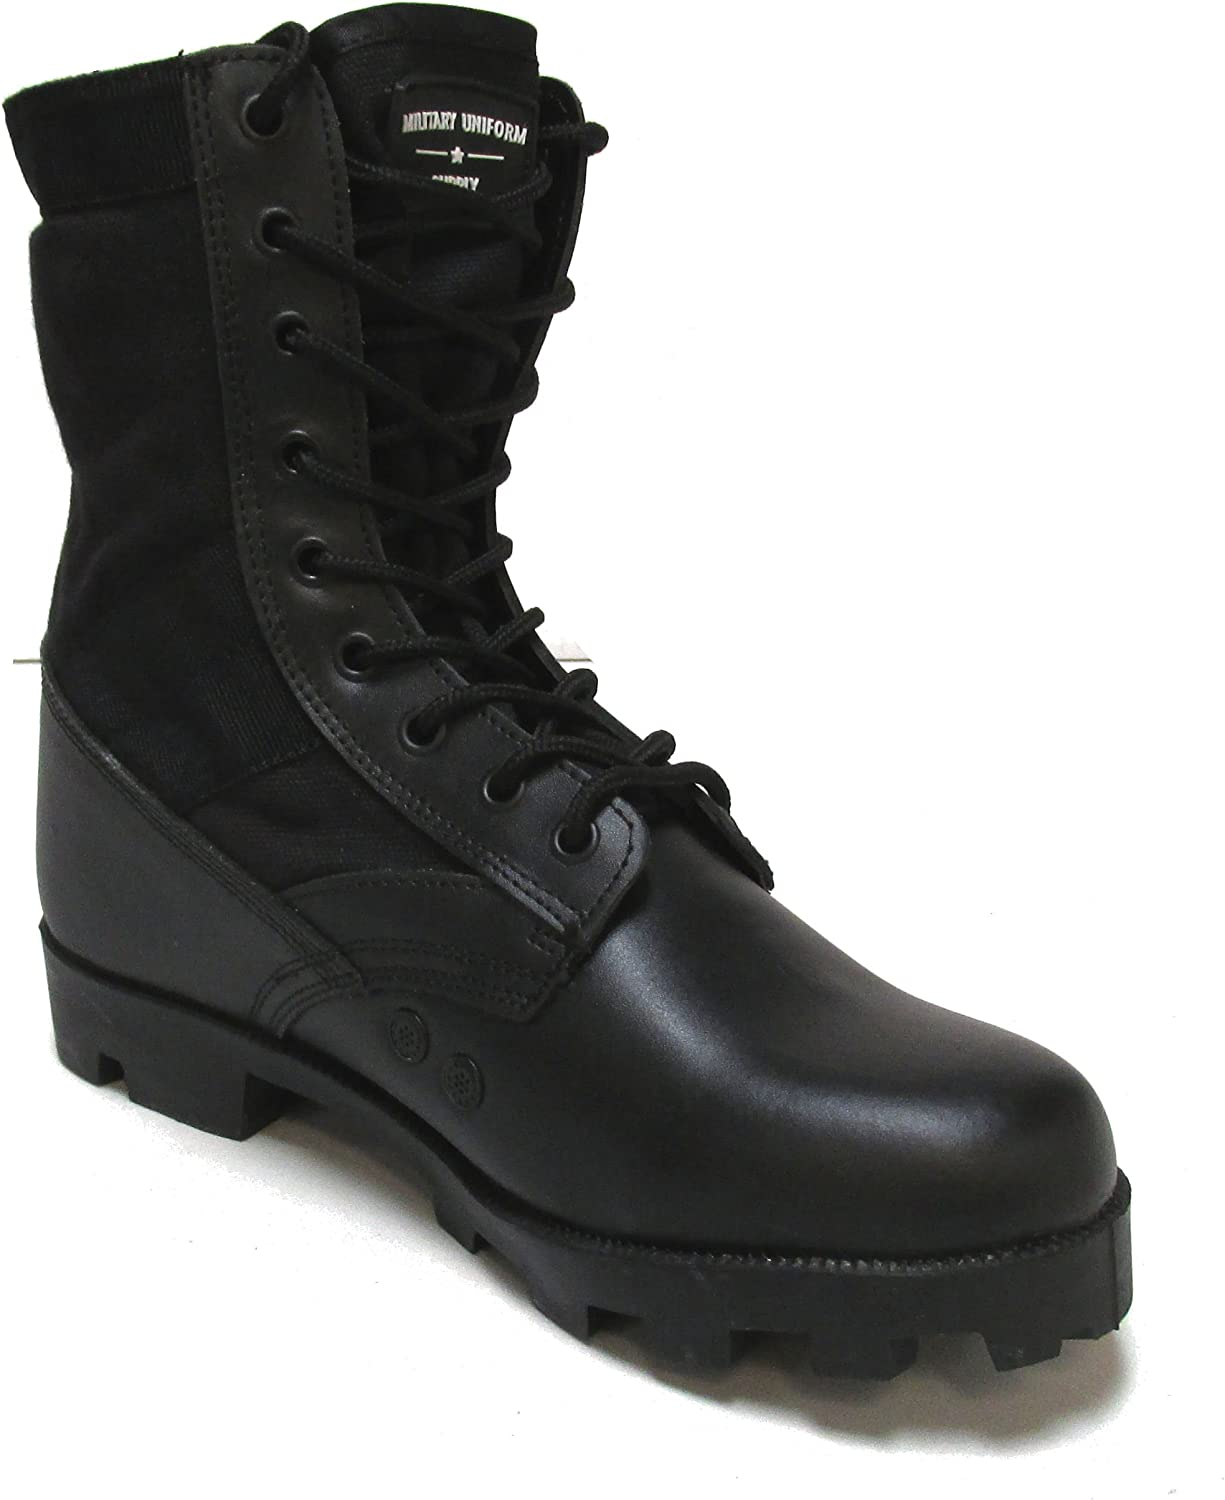 Amazon.com: Botas de jungla de uniforme militar, color negro ...